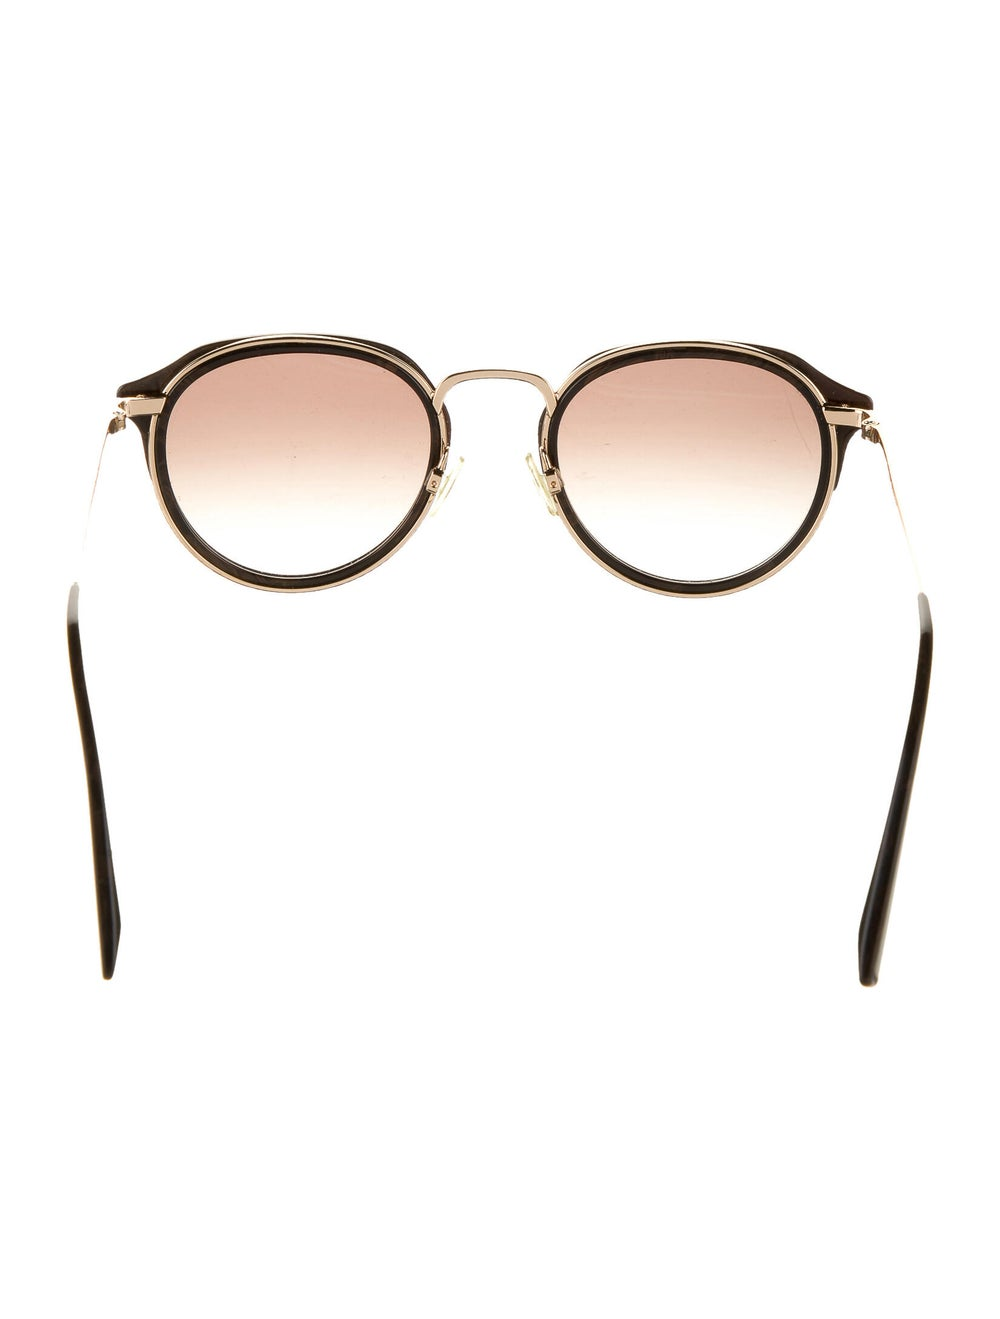 Warby Parker Tinted Round Sunglasses Gold - image 3